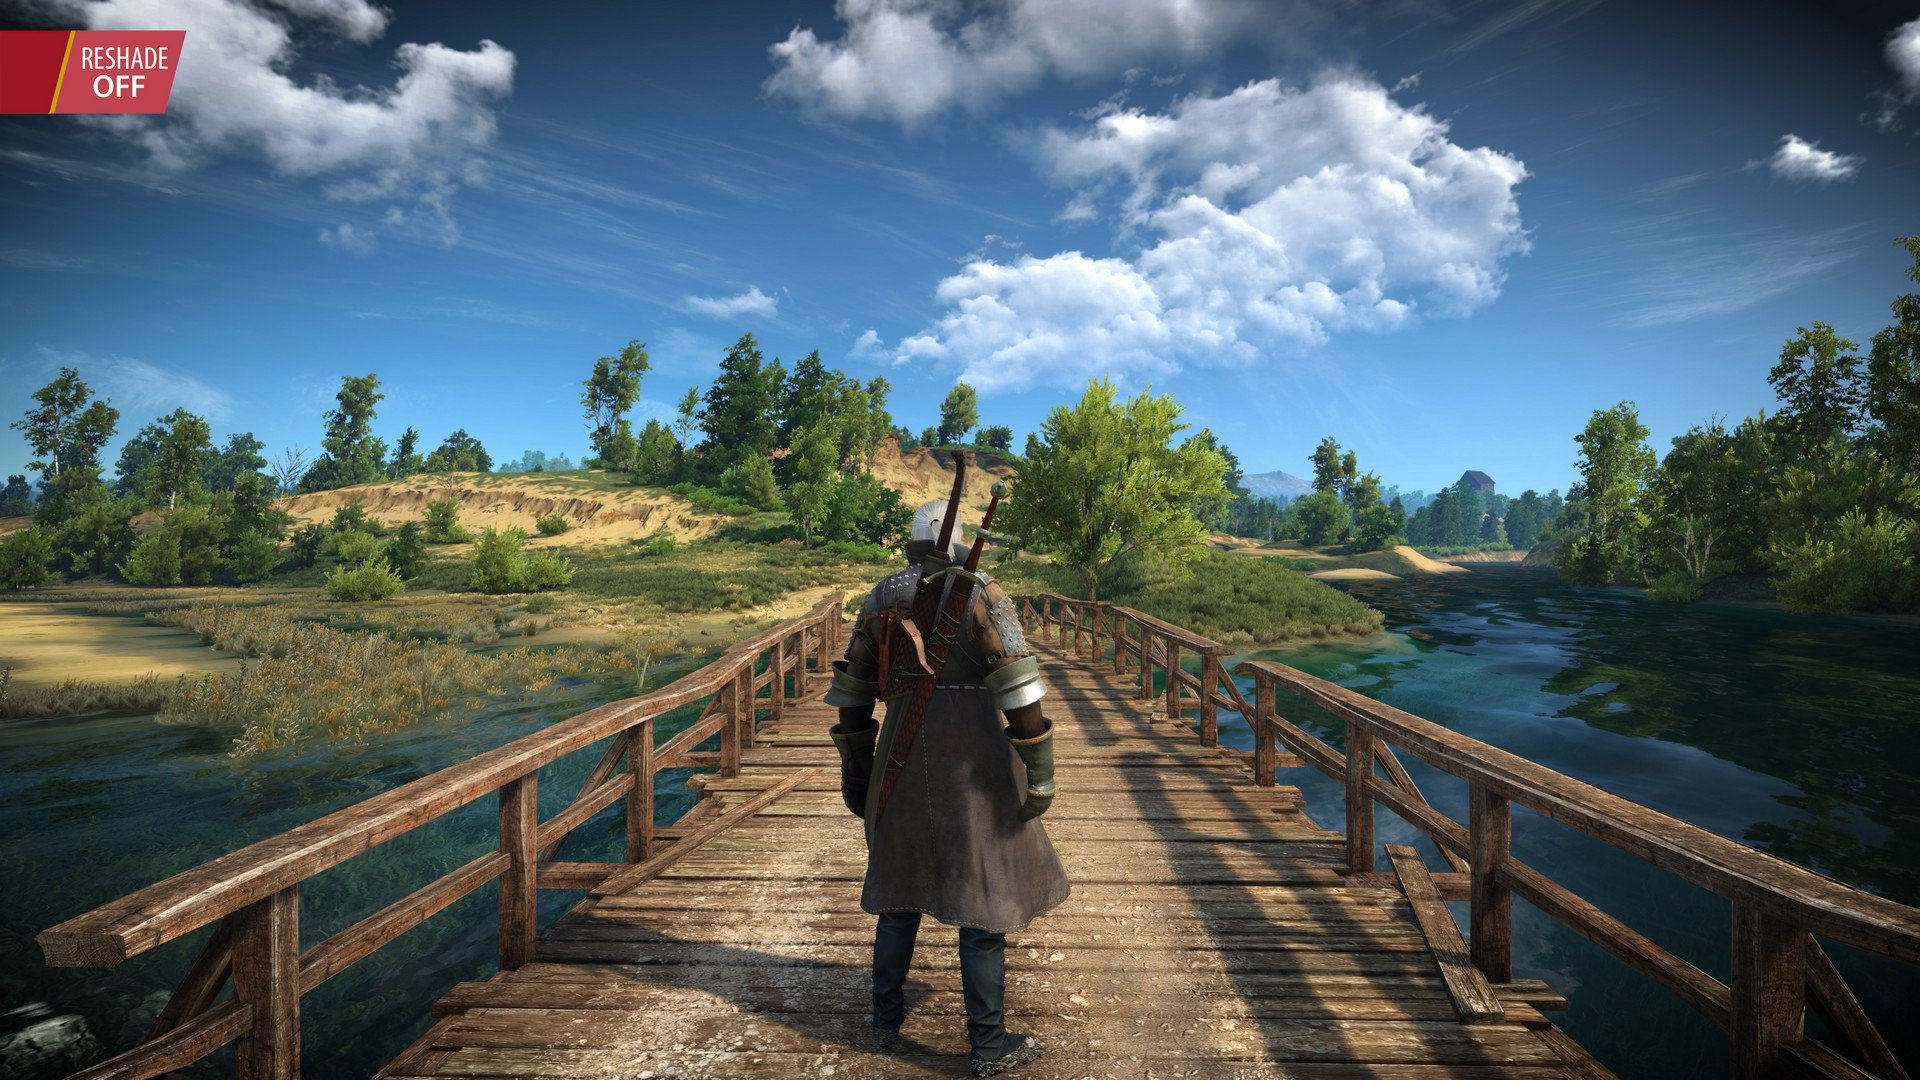 The Witcher 3 in Ray Tracing Is a Show With the Mod Exodus Reshade